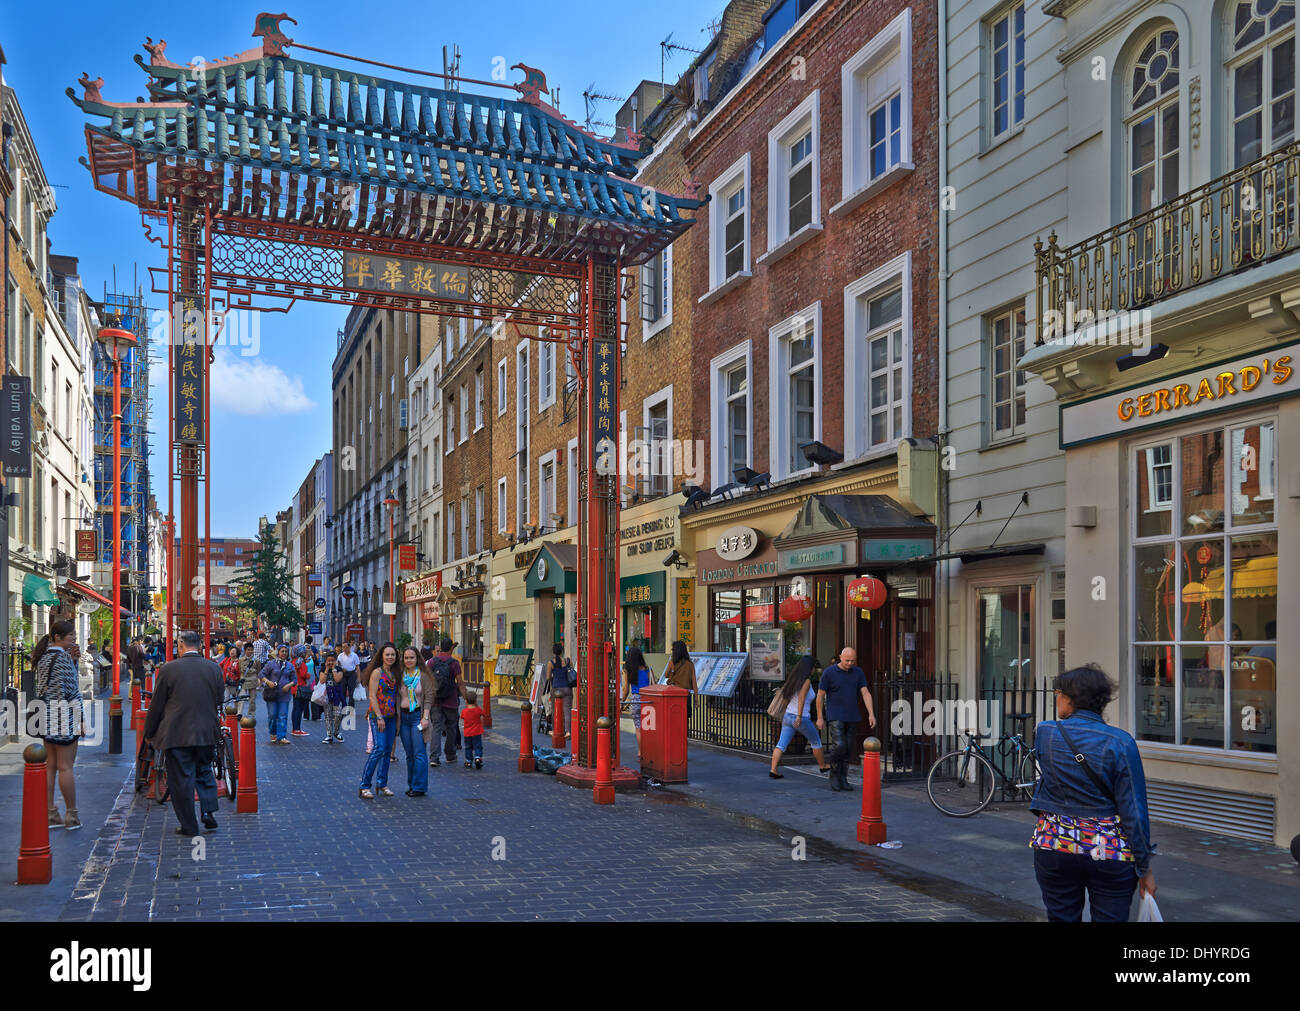 China Town London: The name Chinatown has been used at different times to describe different places in London - Stock Image